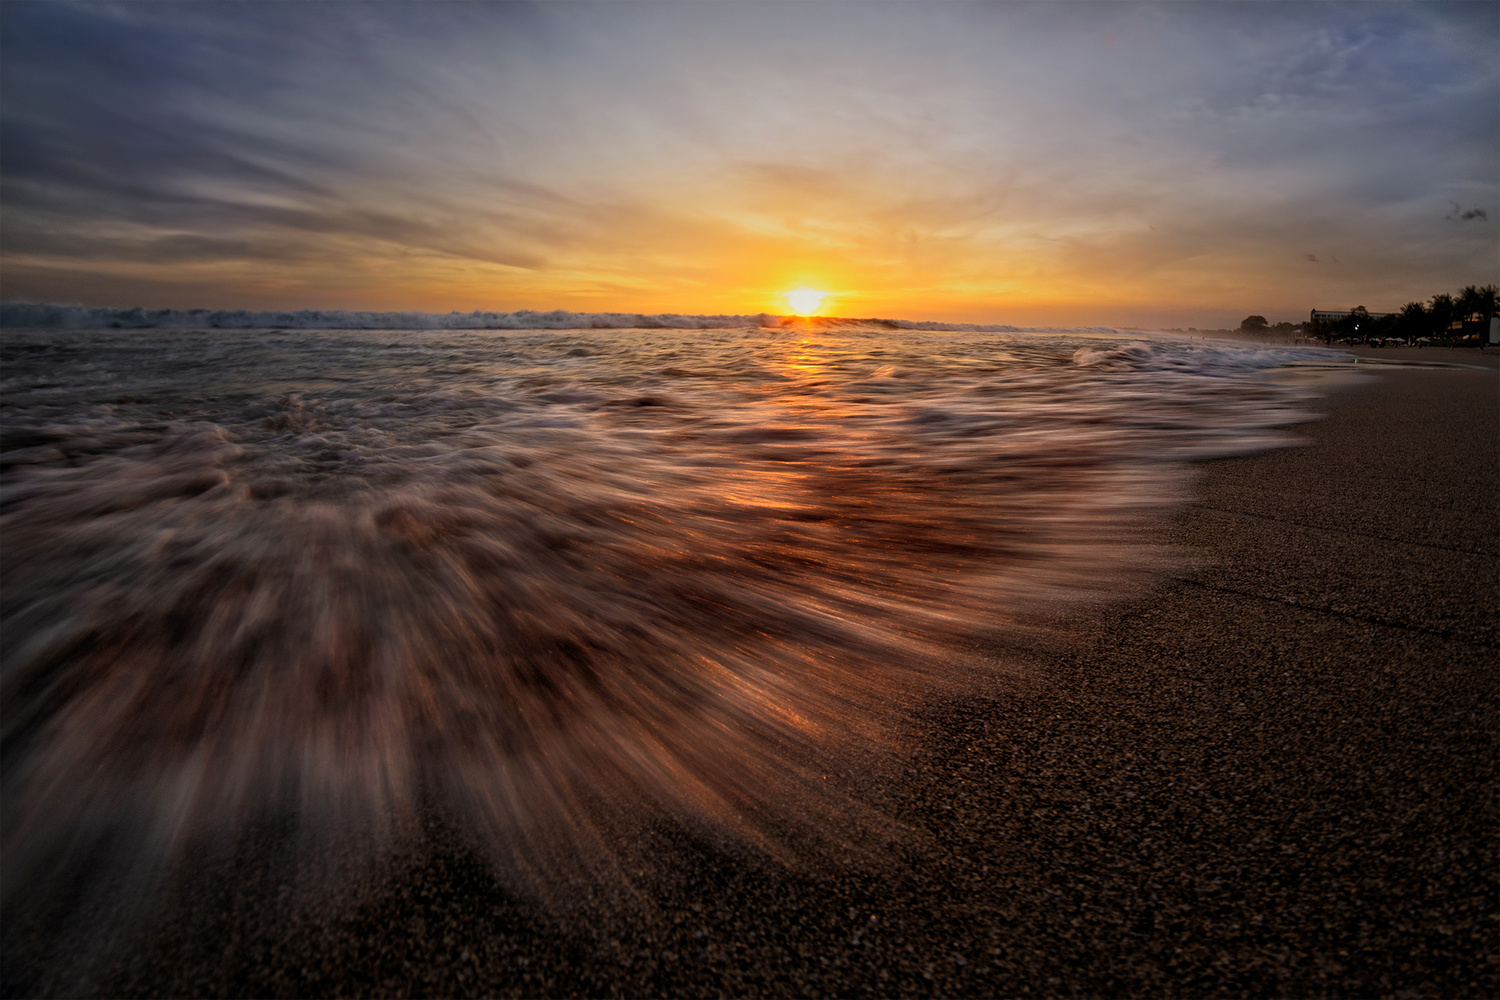 Riding the wave! by chinmay.ninja 